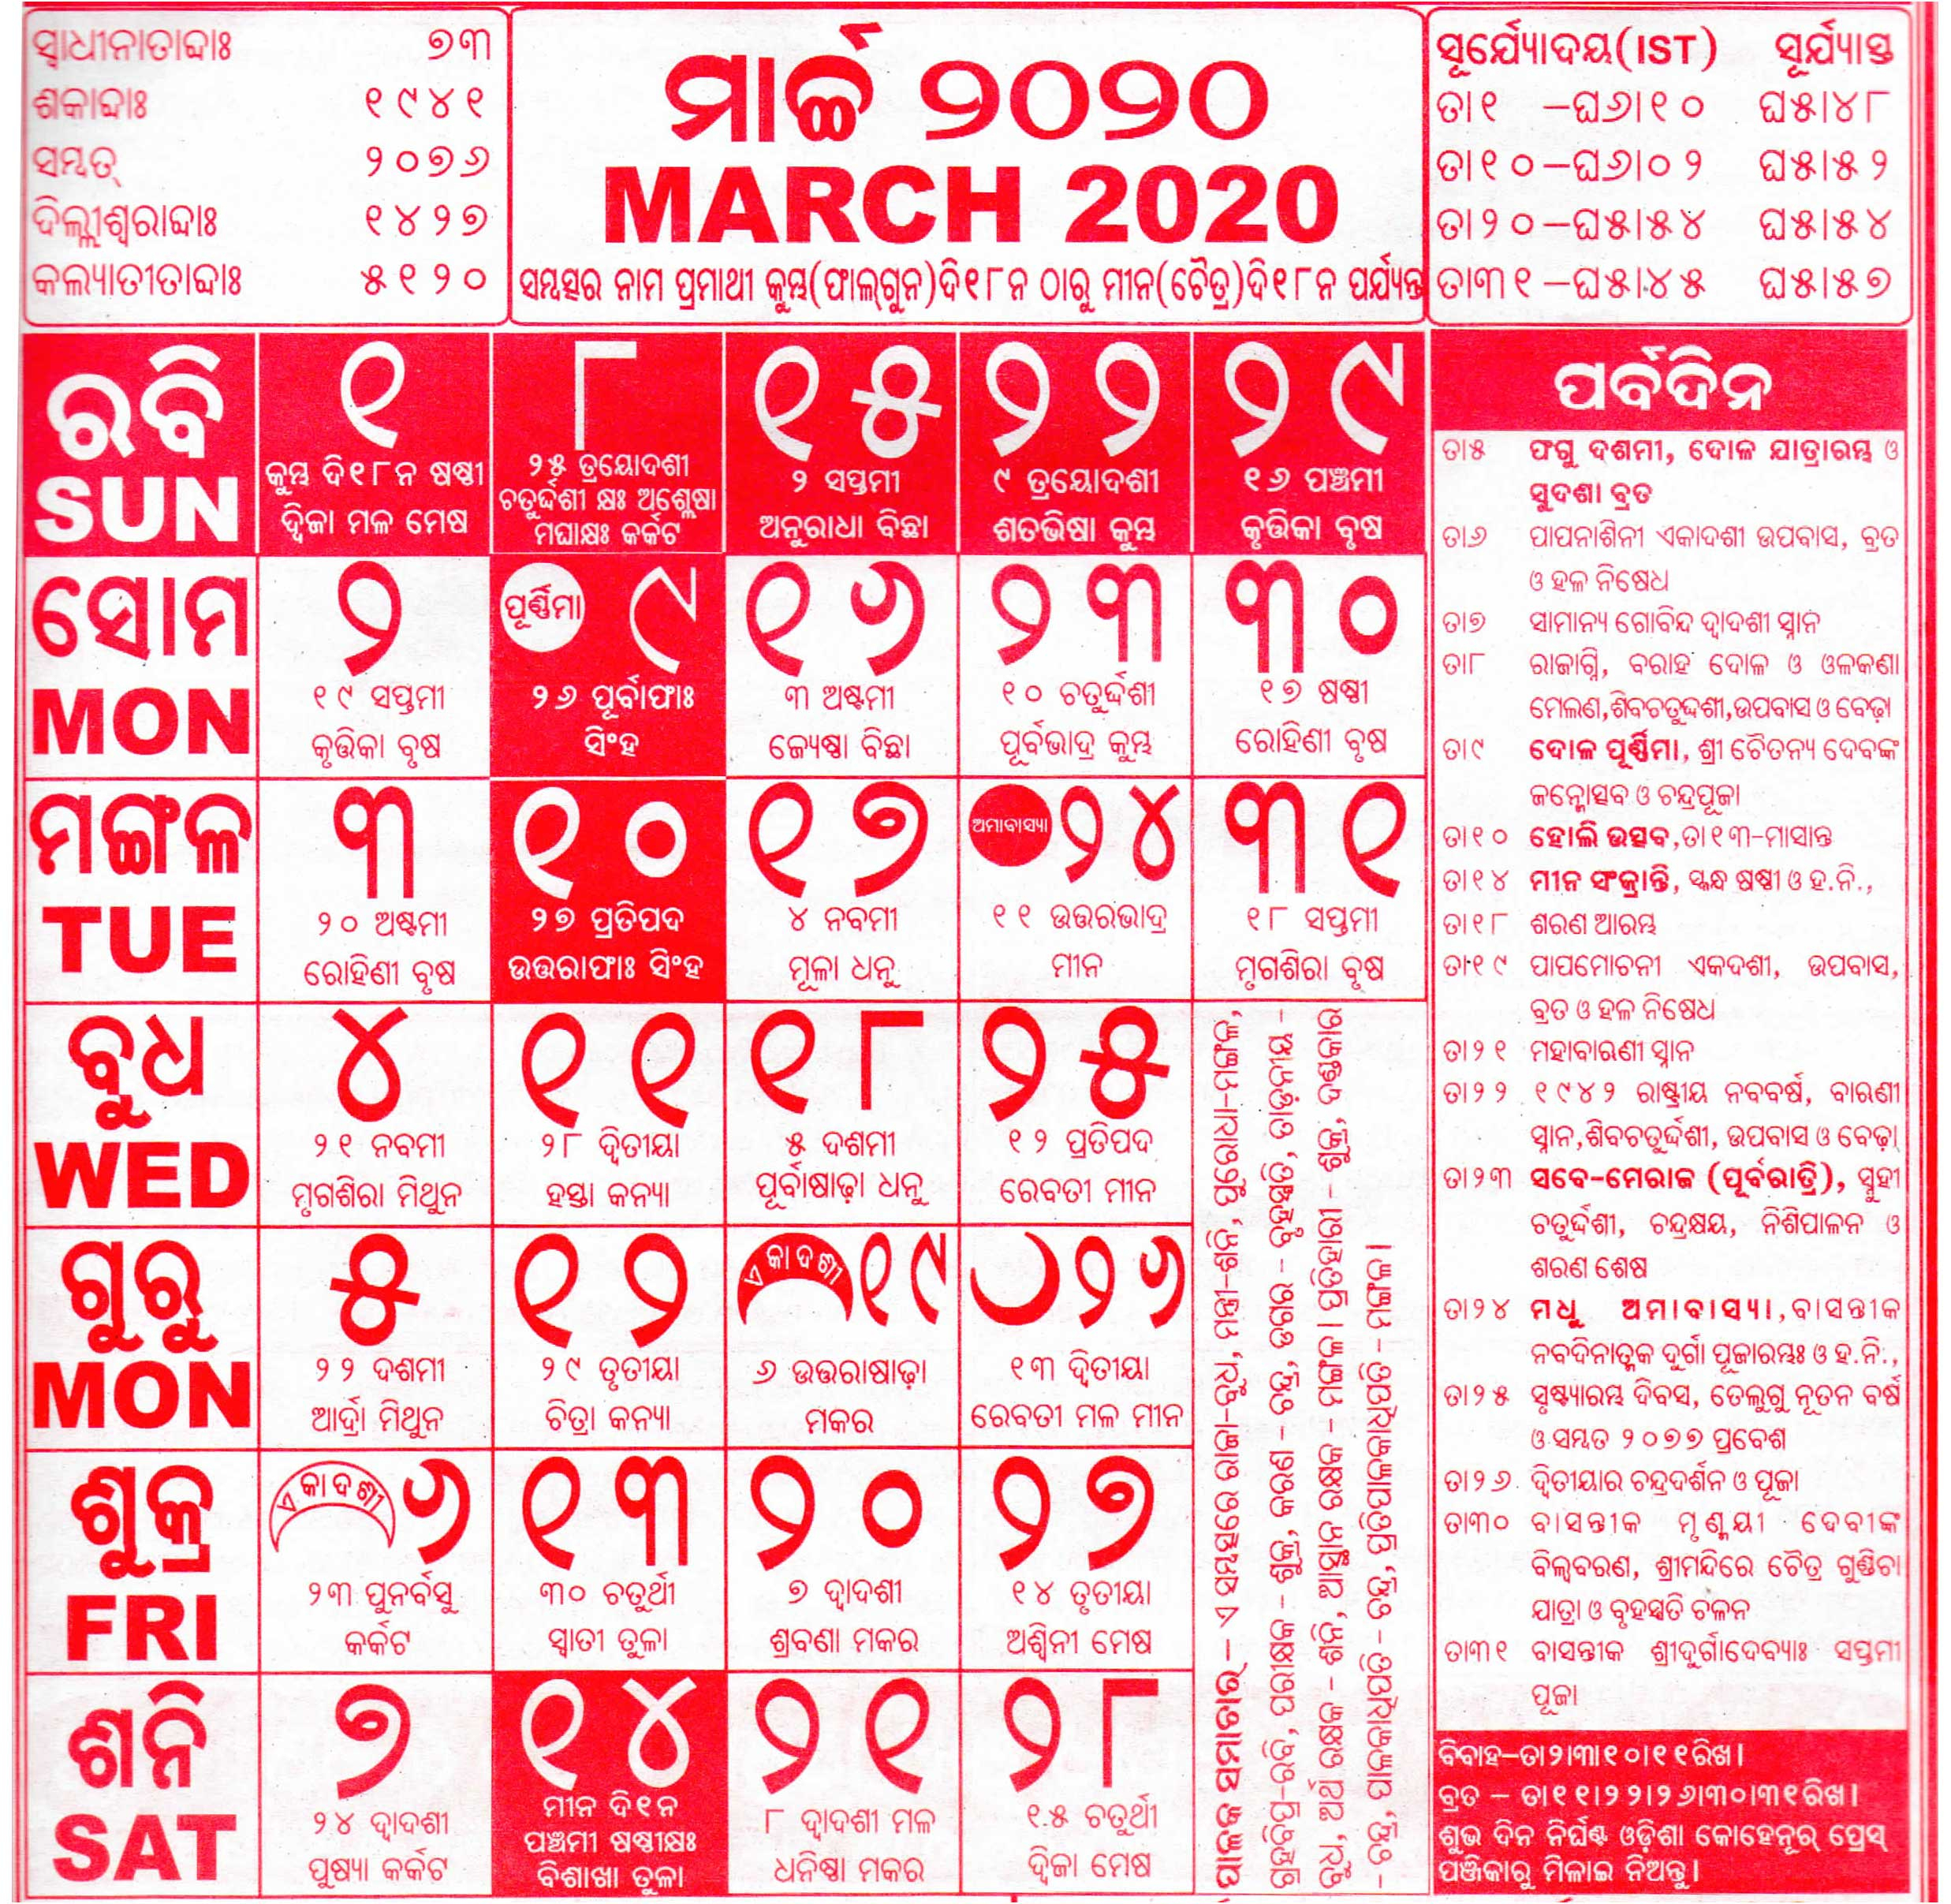 Odia Calendar March 2020 | | Calendarcraft with regard to Oriya Calendar 2020 February